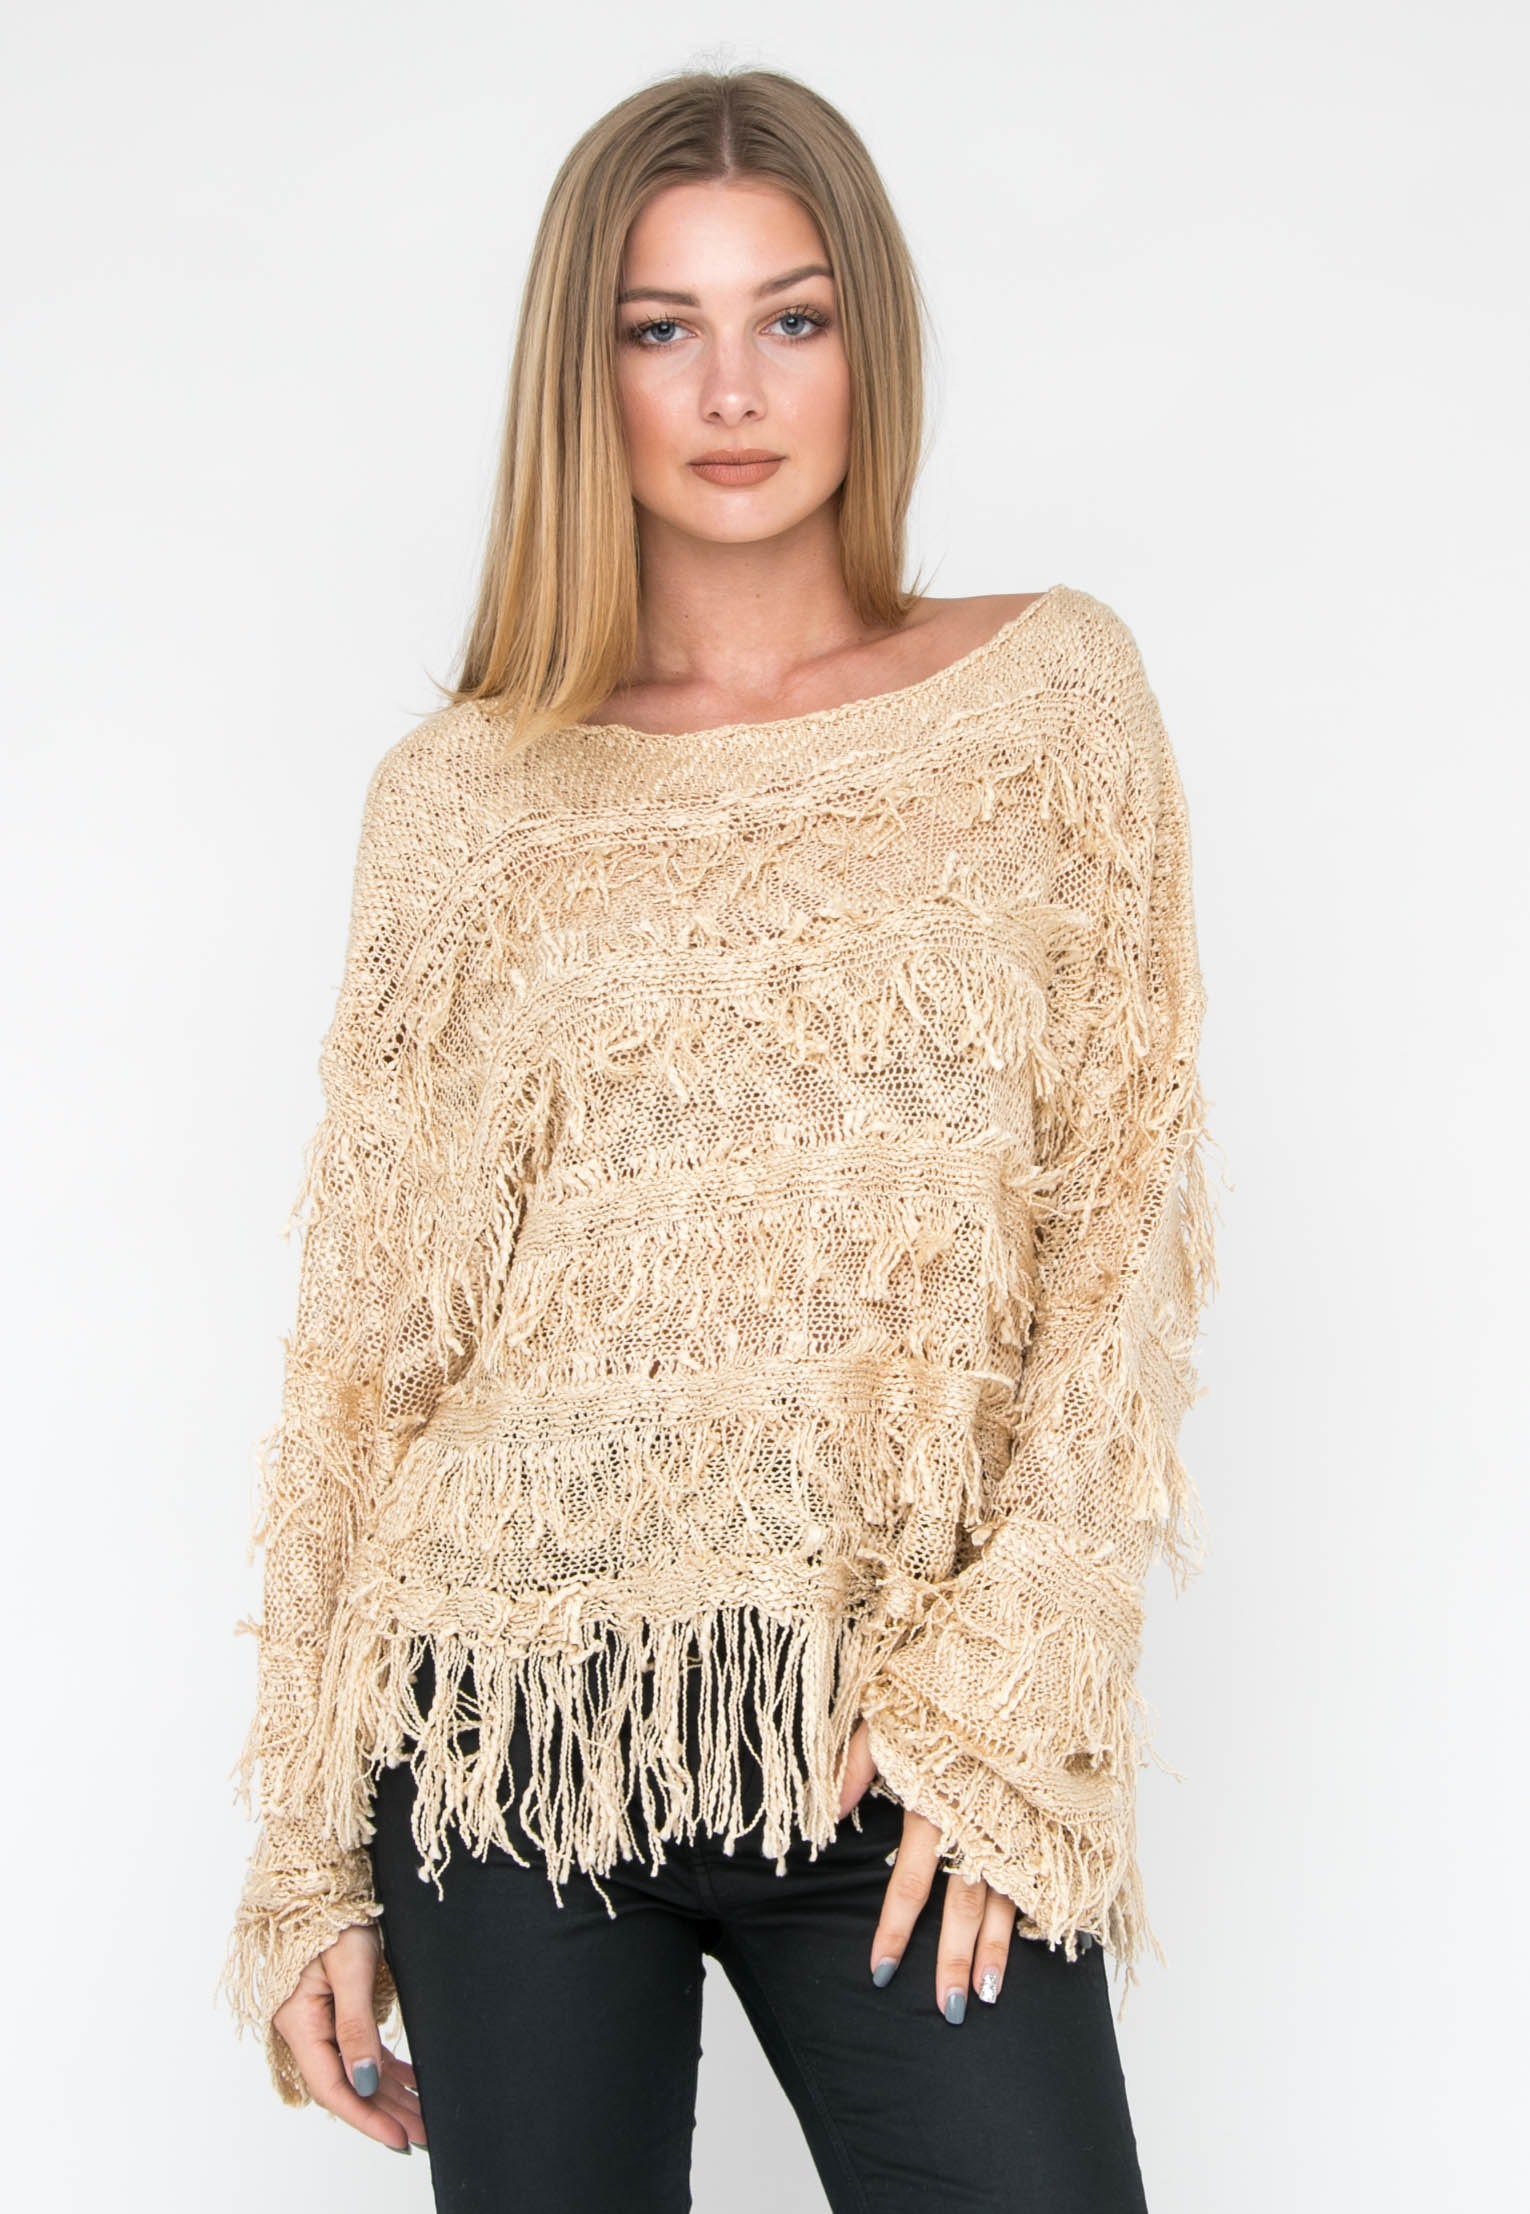 Fringe Tiered Sweater - Tan